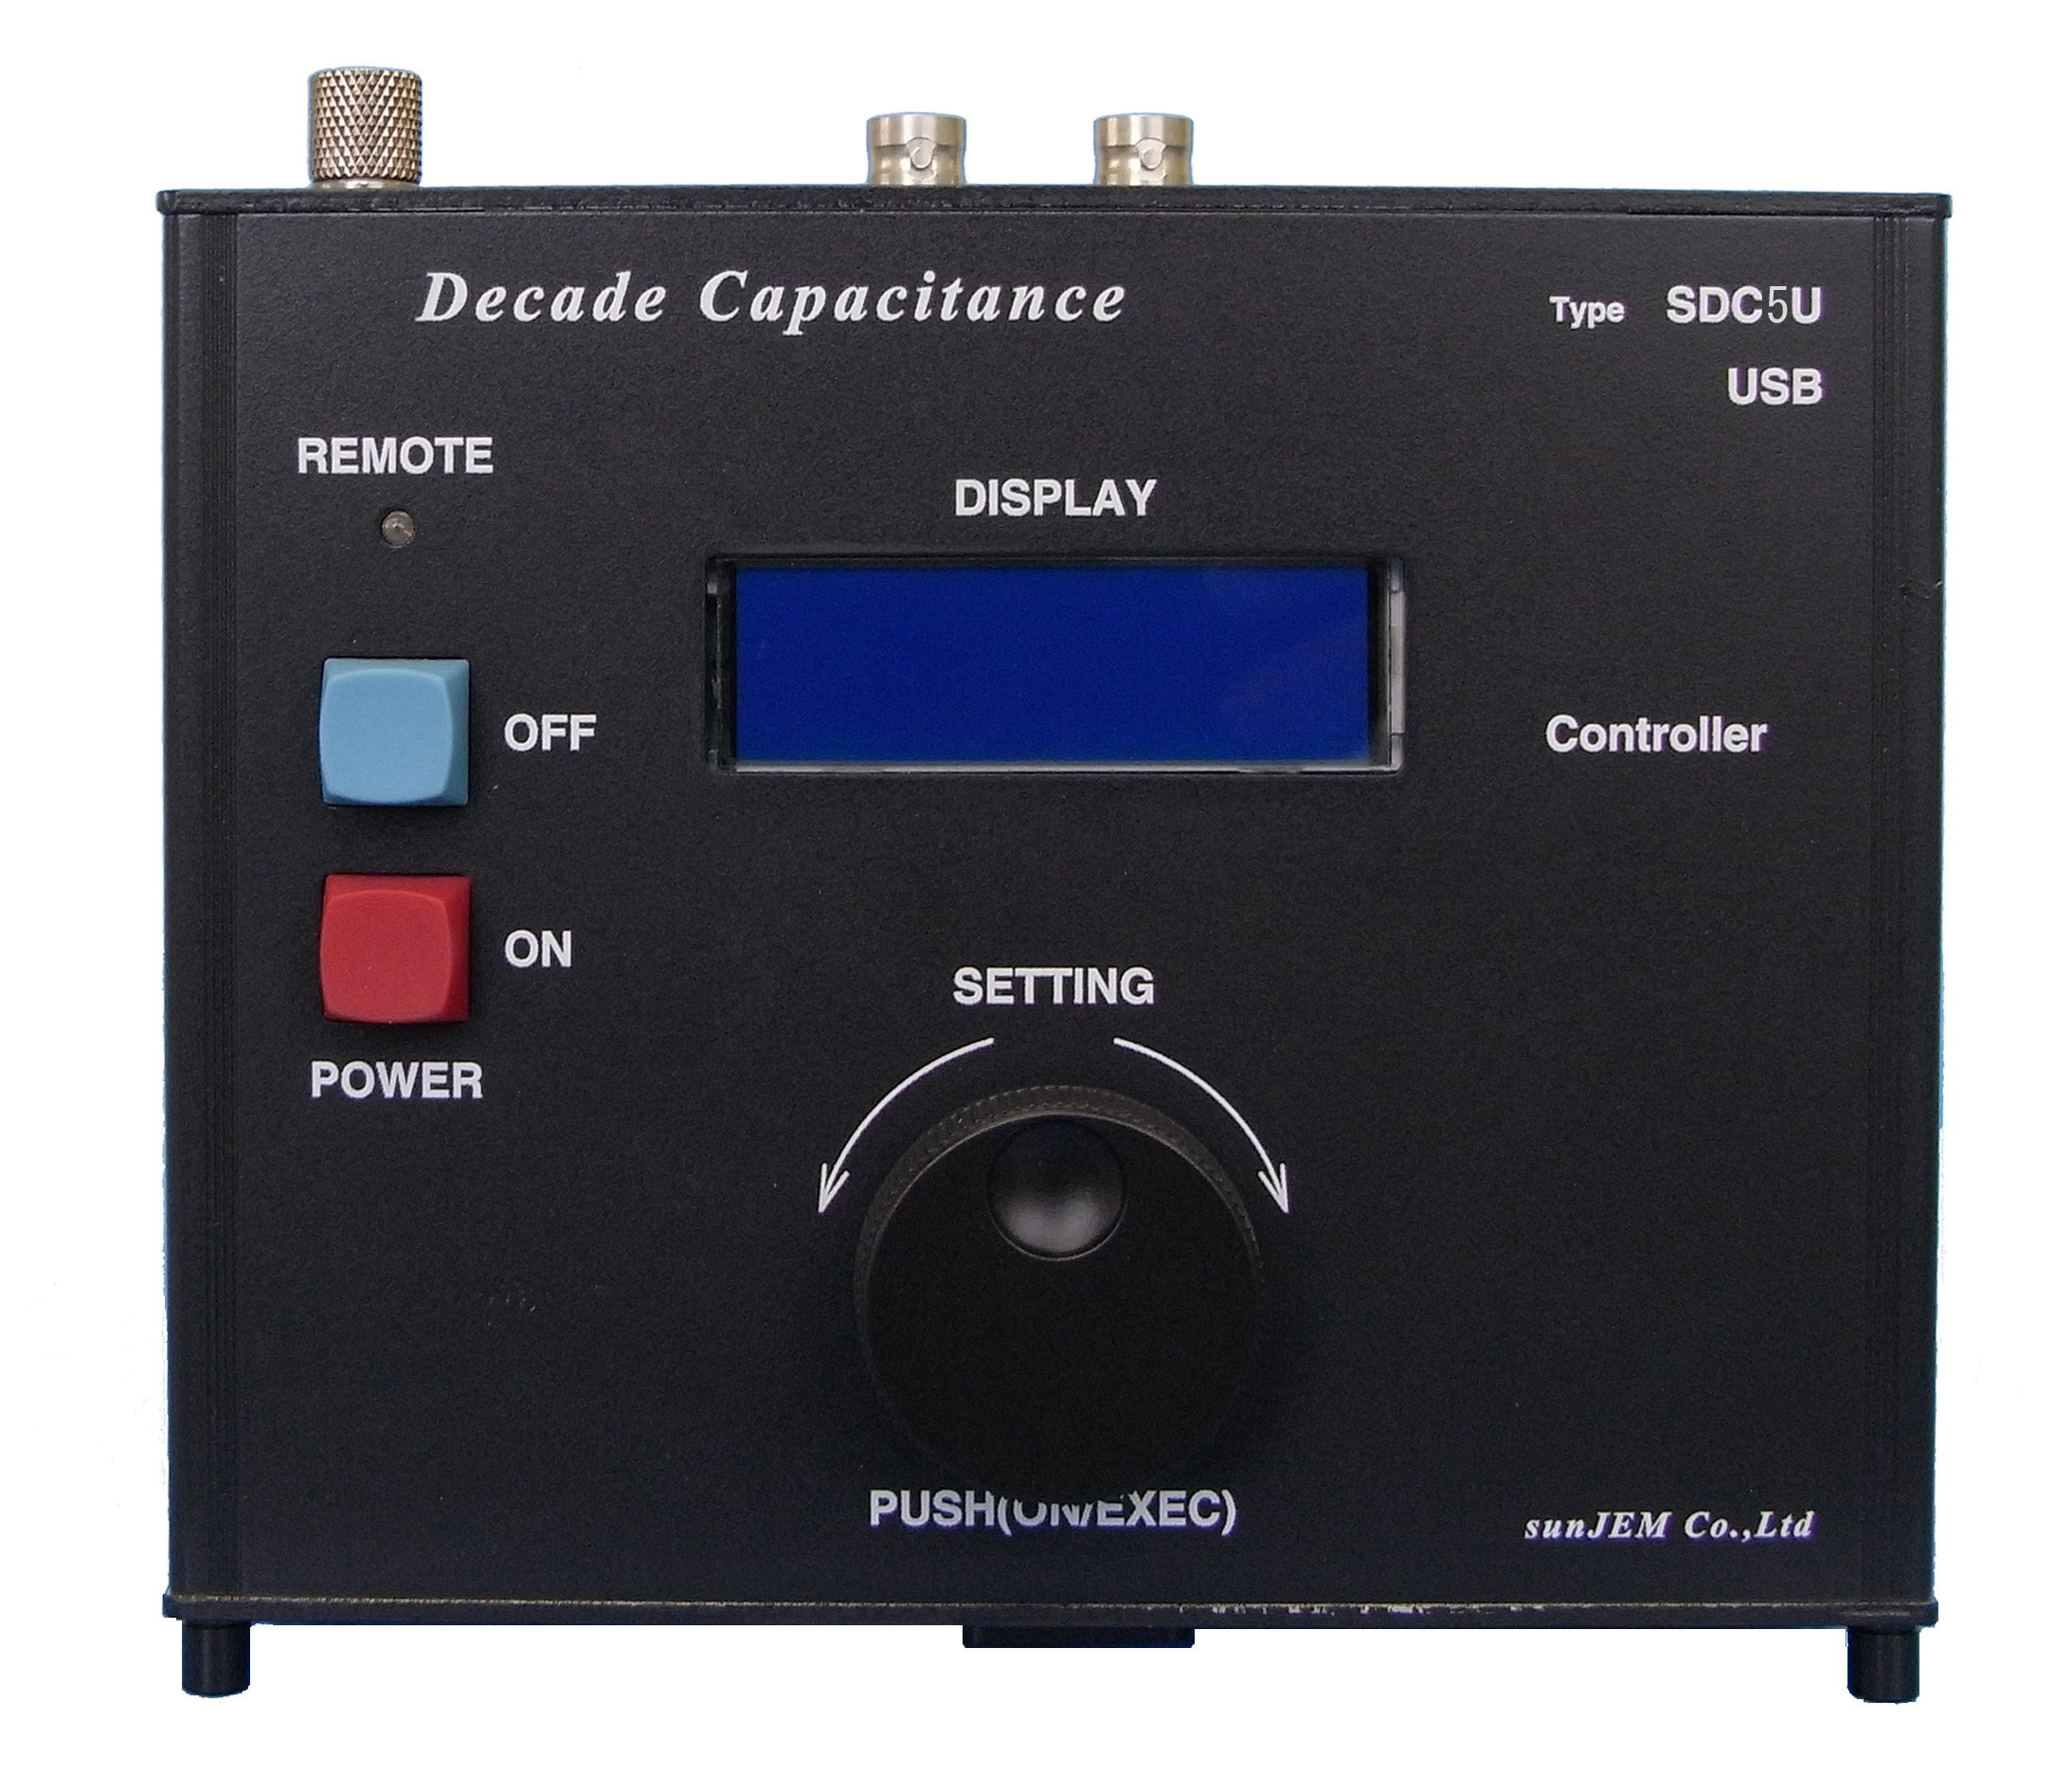 Variable Capacitance with USB TYPE SDC5U/8020A Series